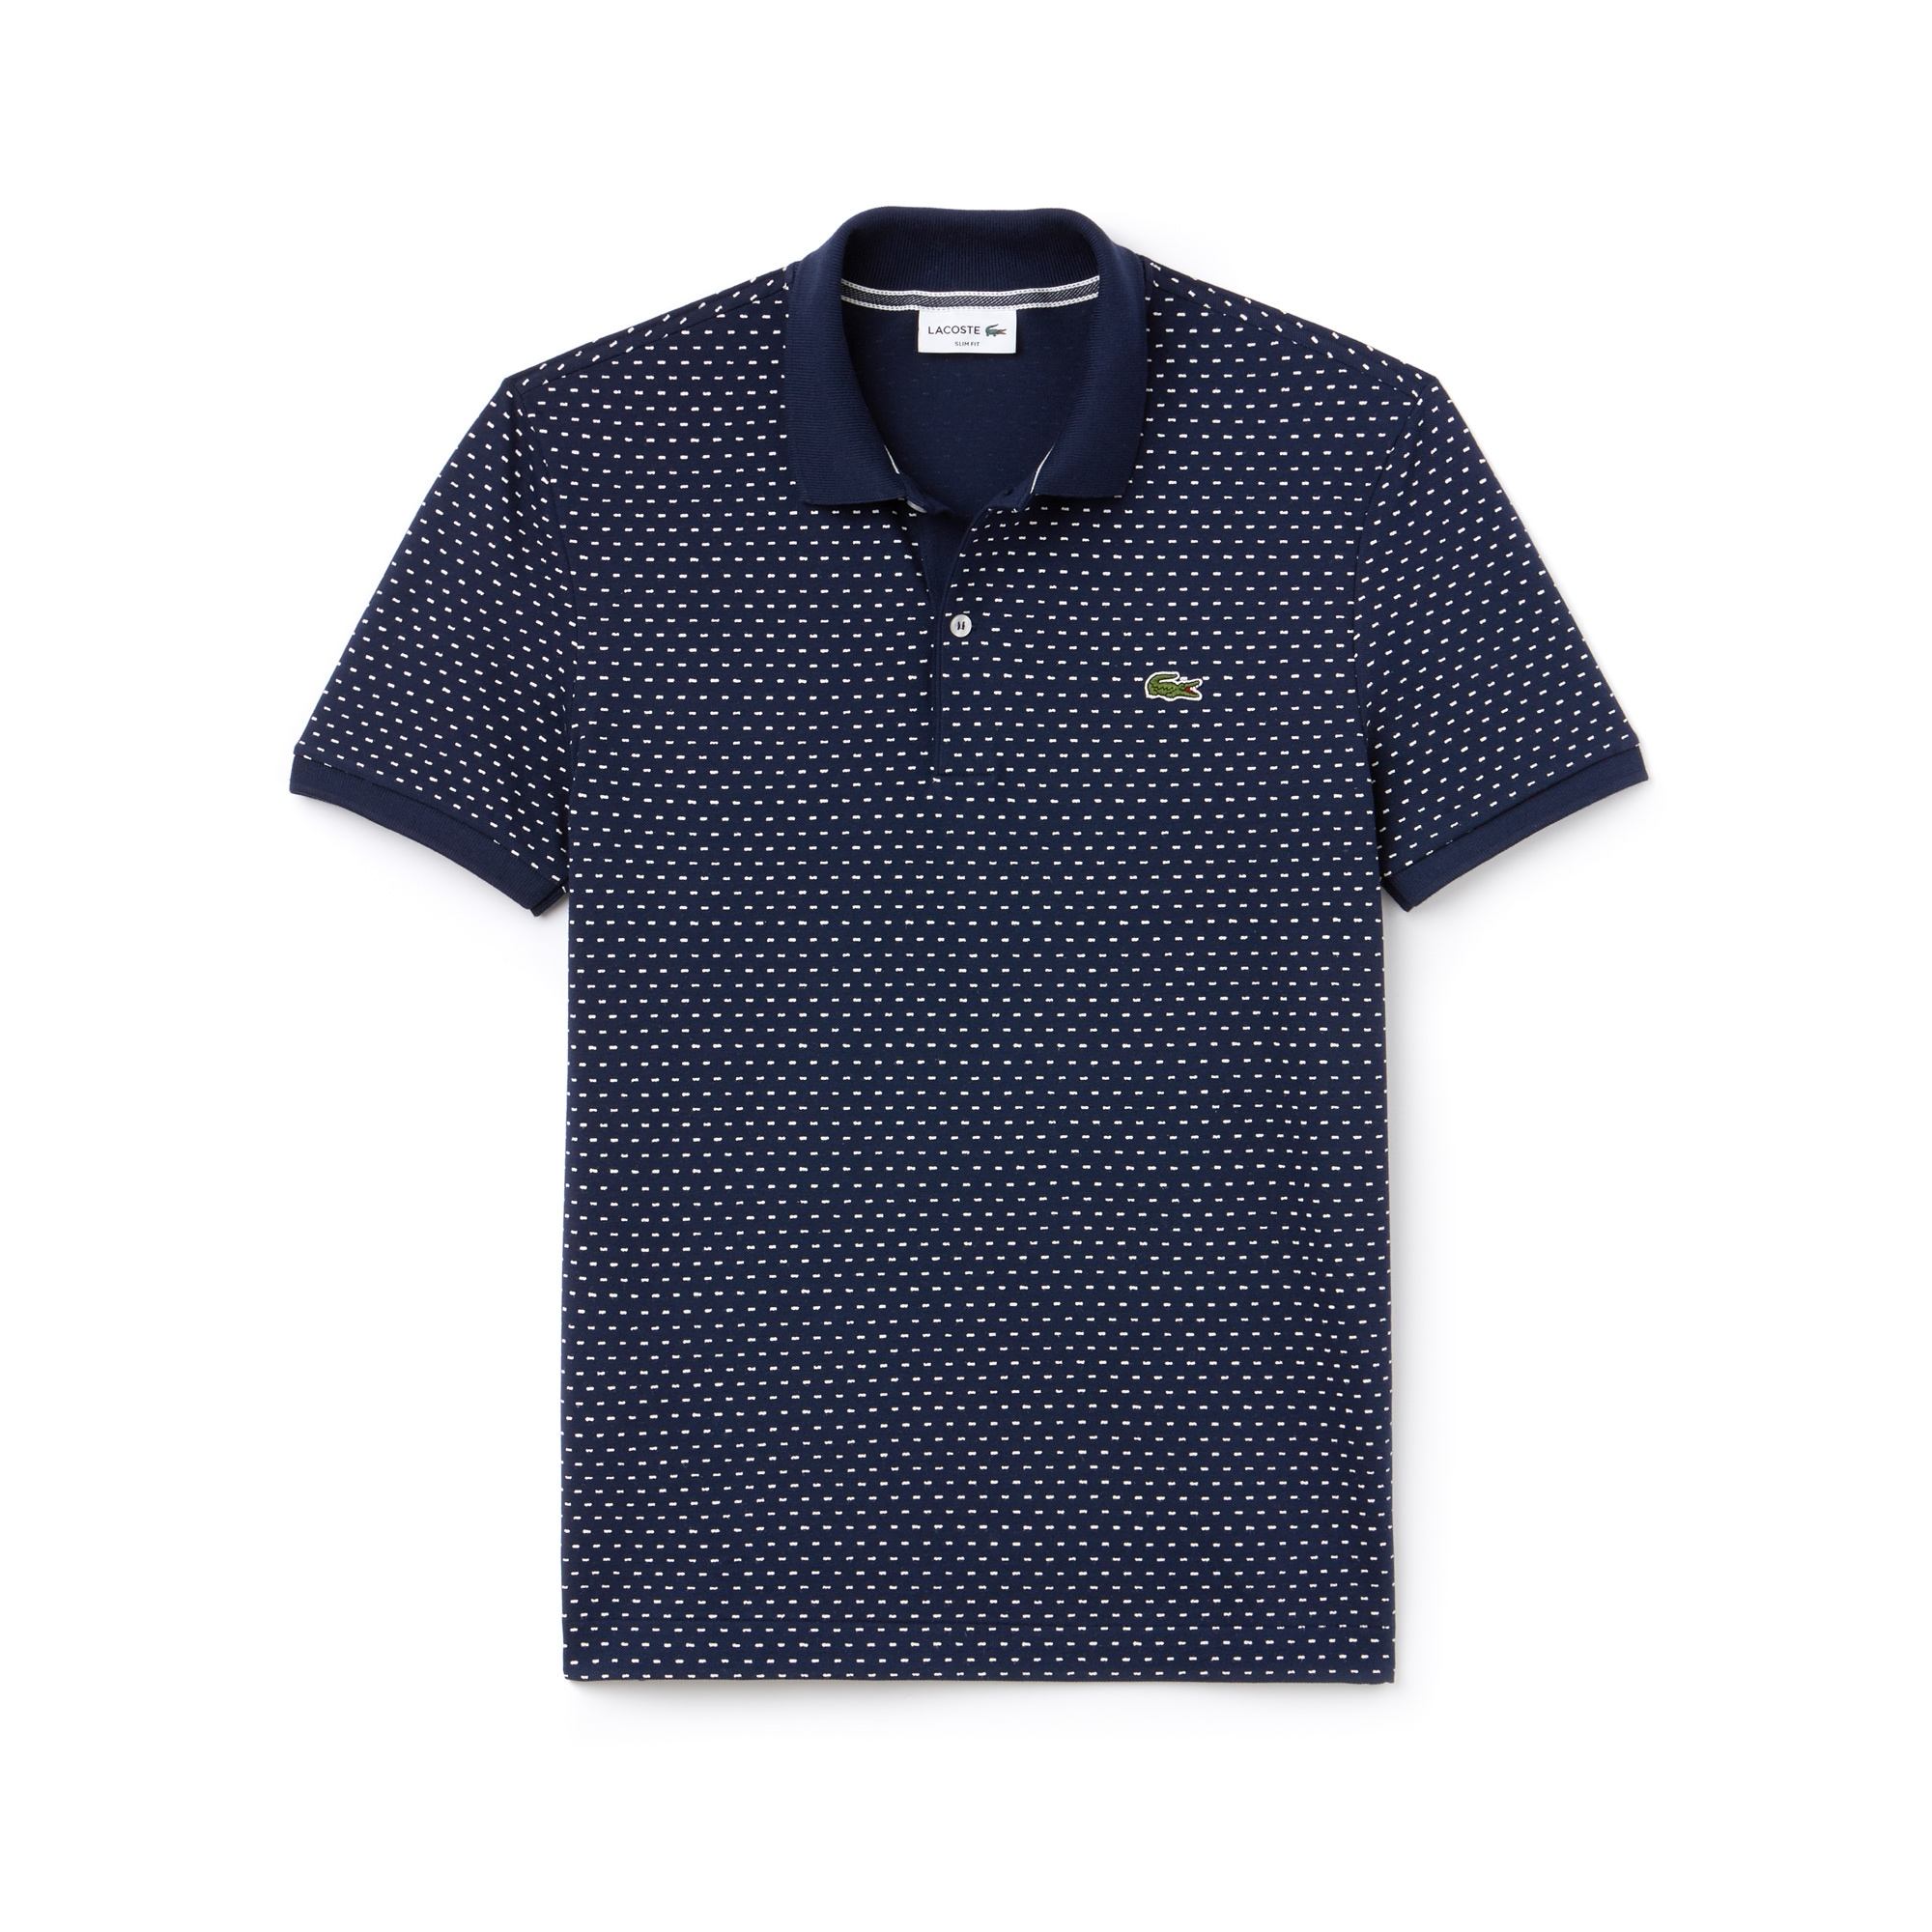 Men's Lacoste Slim Fit Print Mini Piqué Polo Shirt